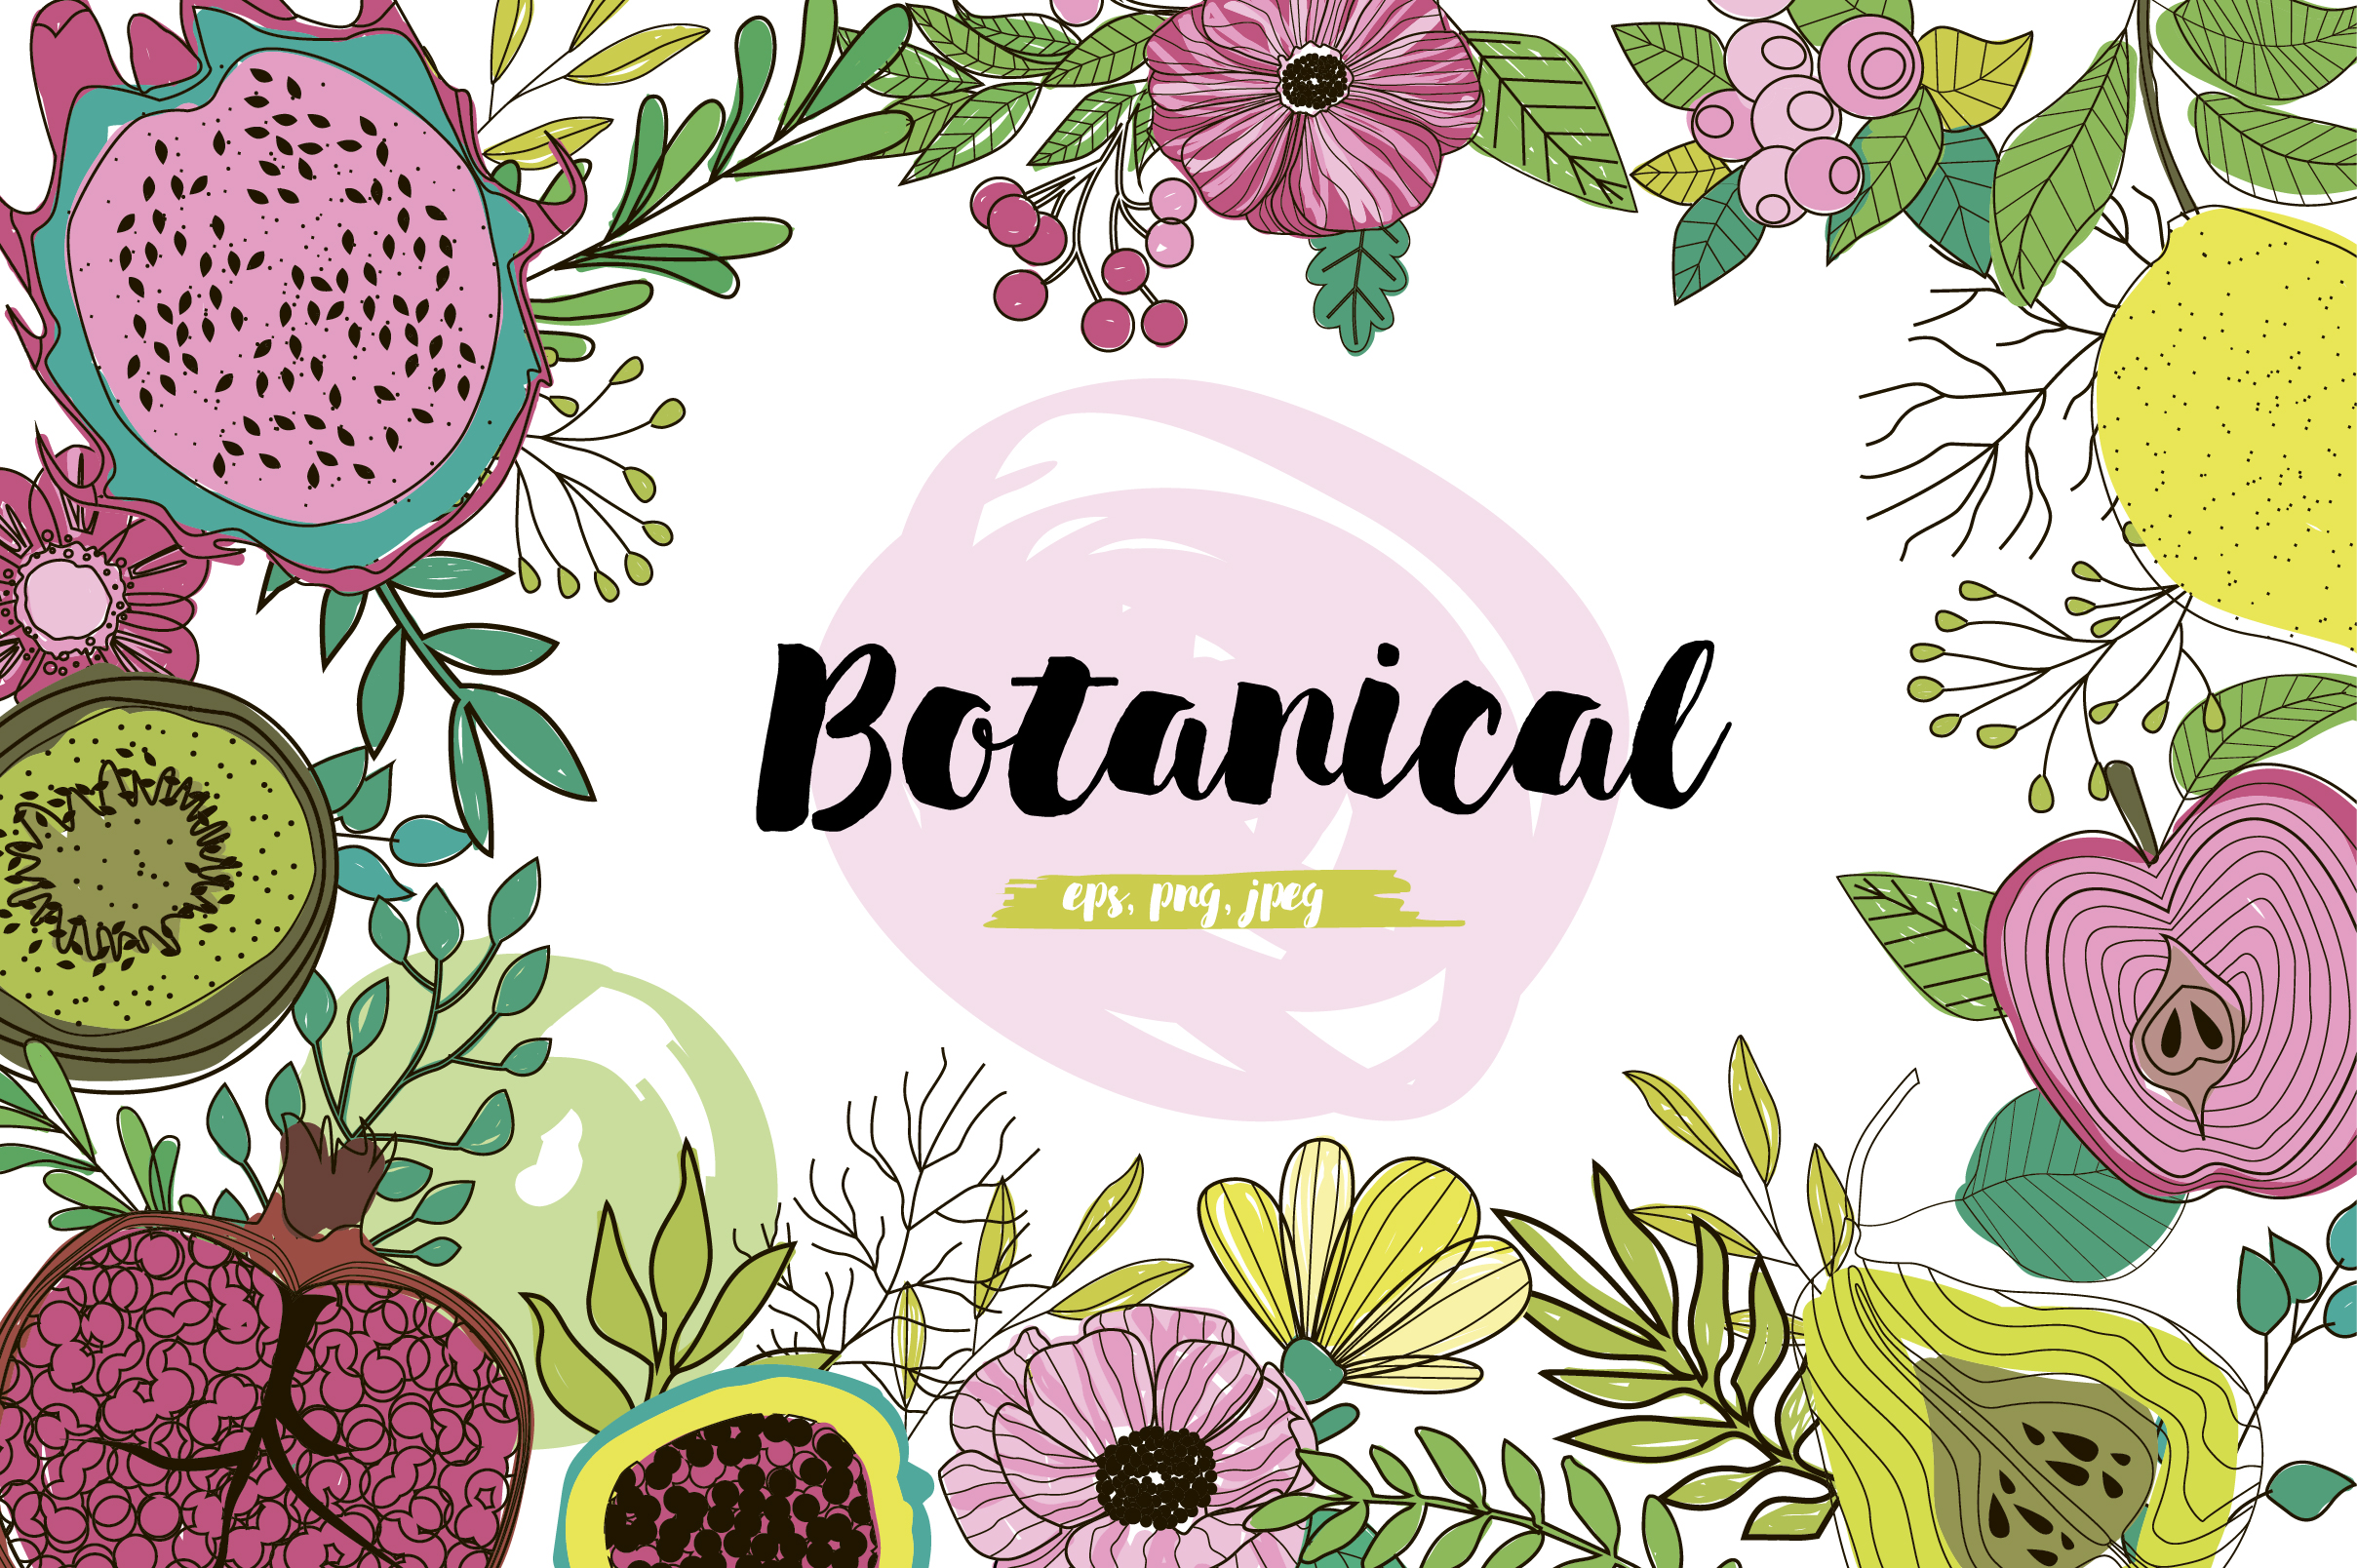 Botanical logos & illustrations example image 1